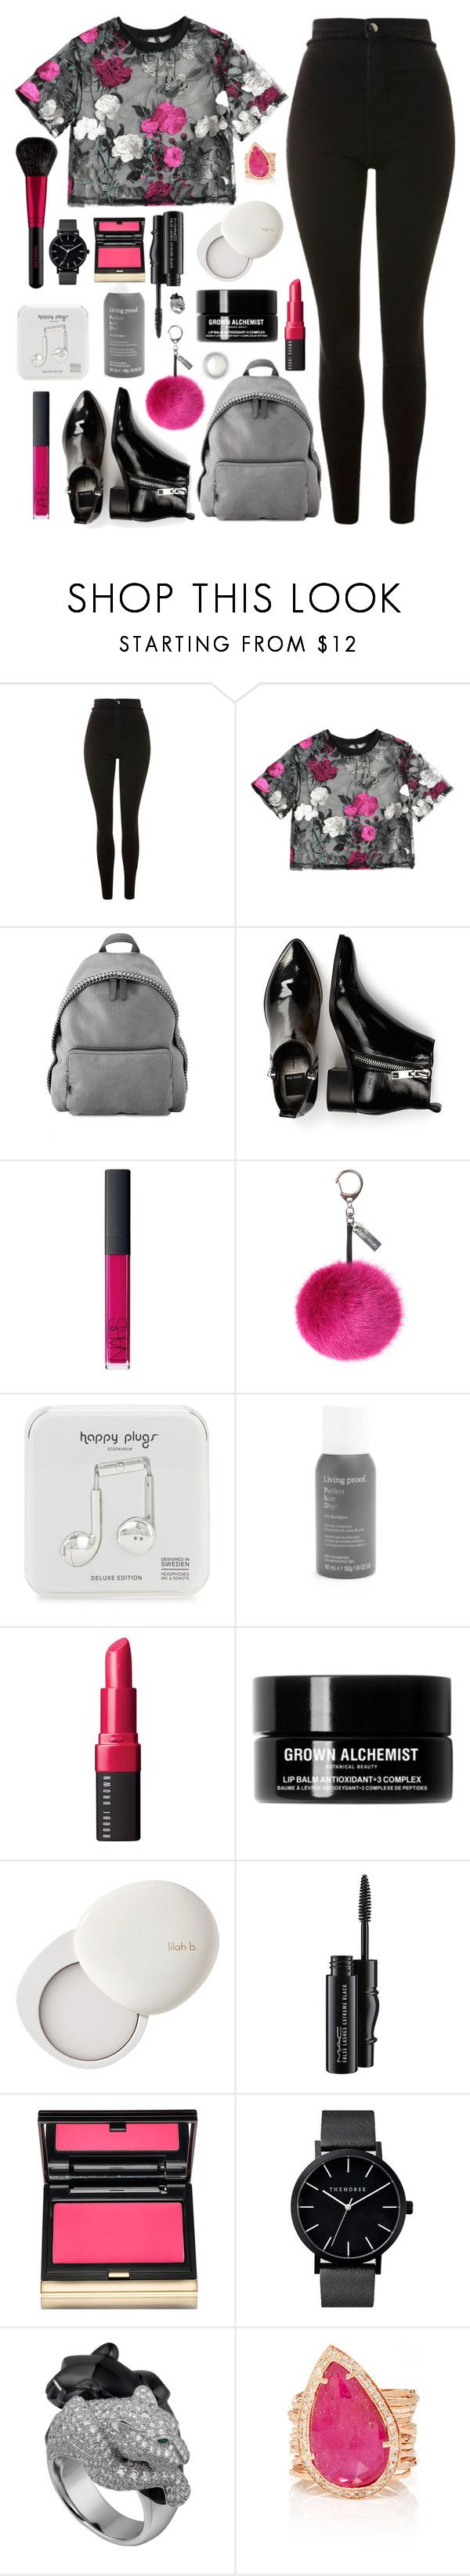 """Secateurs"" by cocochaneljr on Polyvore featuring Topshop, STELLA McCARTNEY, Dolce Vita, NARS Cosmetics, Helen Moore, Happy Plugs, Living Proof, Revlon, Bobbi Brown Cosmetics and Grown Alchemist"